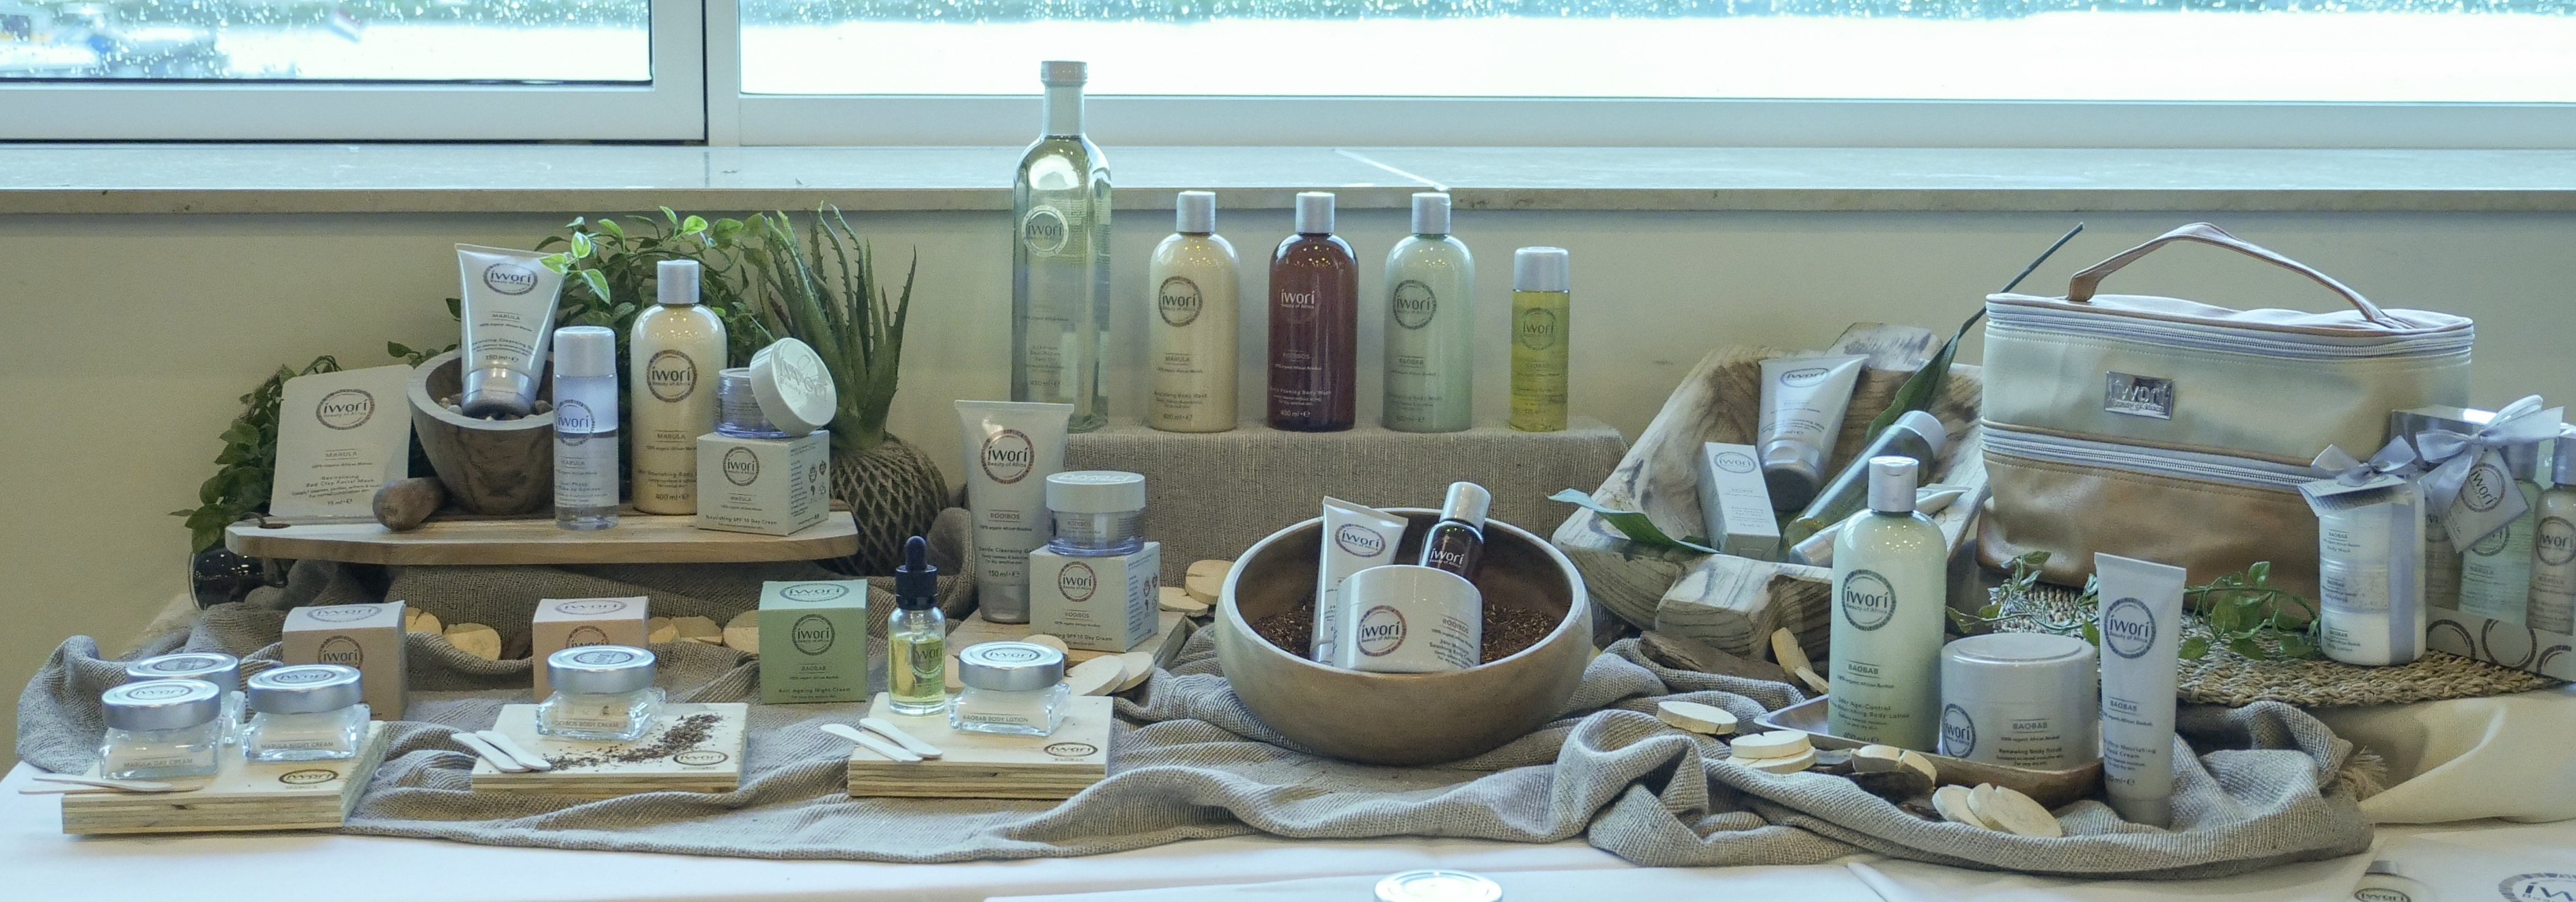 2019 Stamegna Network - Organic & Natural Beauty Care